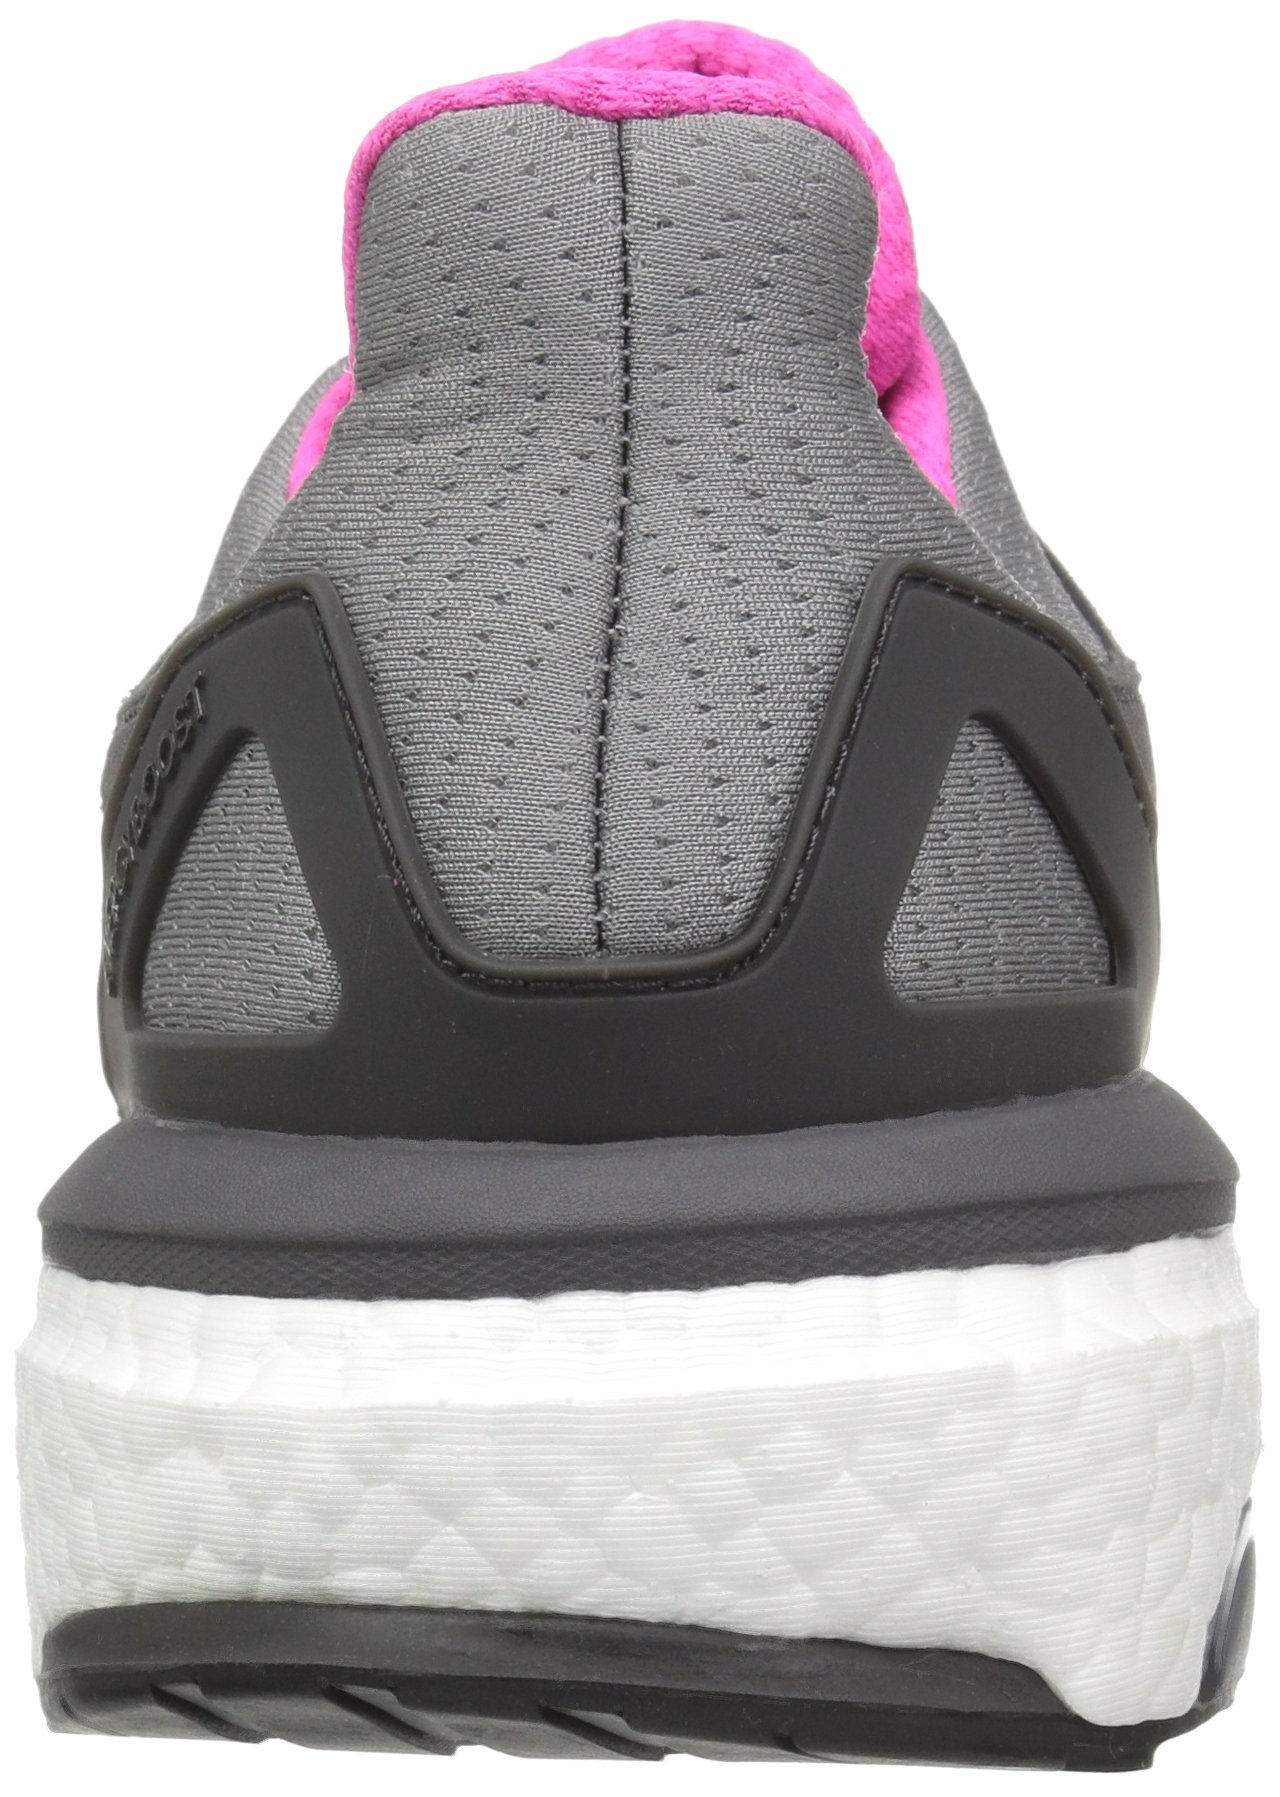 81BaxETOPoL - adidas Womens Energy Boost Fabric Low Top Lace Up Running Sneaker